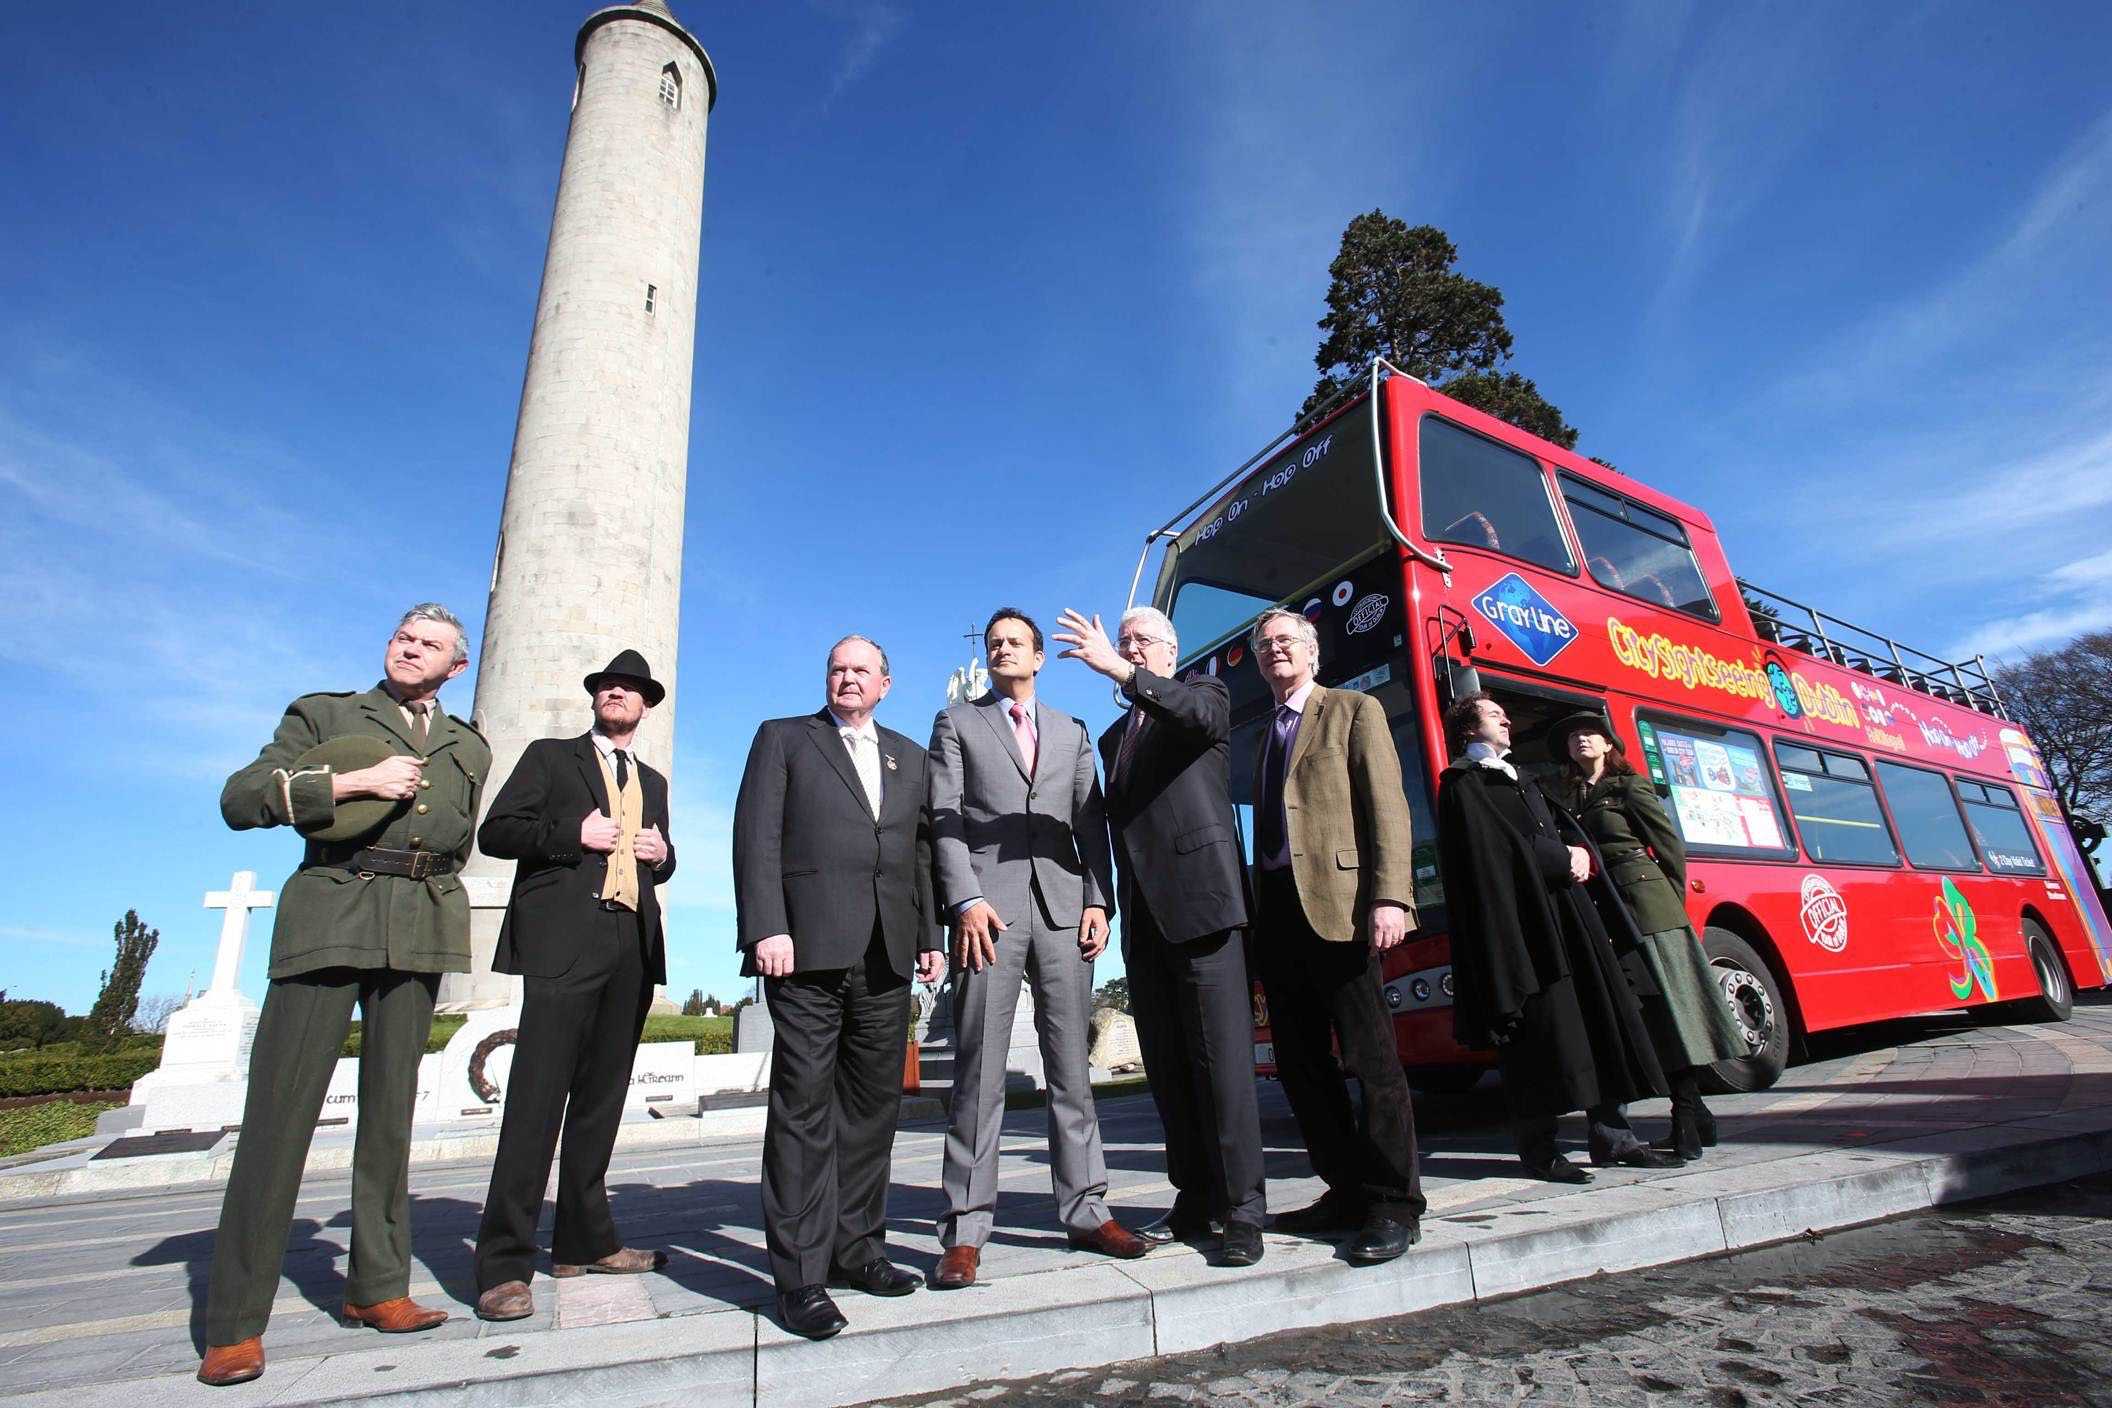 The launch of CityScape's Dublin Bus Tour at Glasnevin.